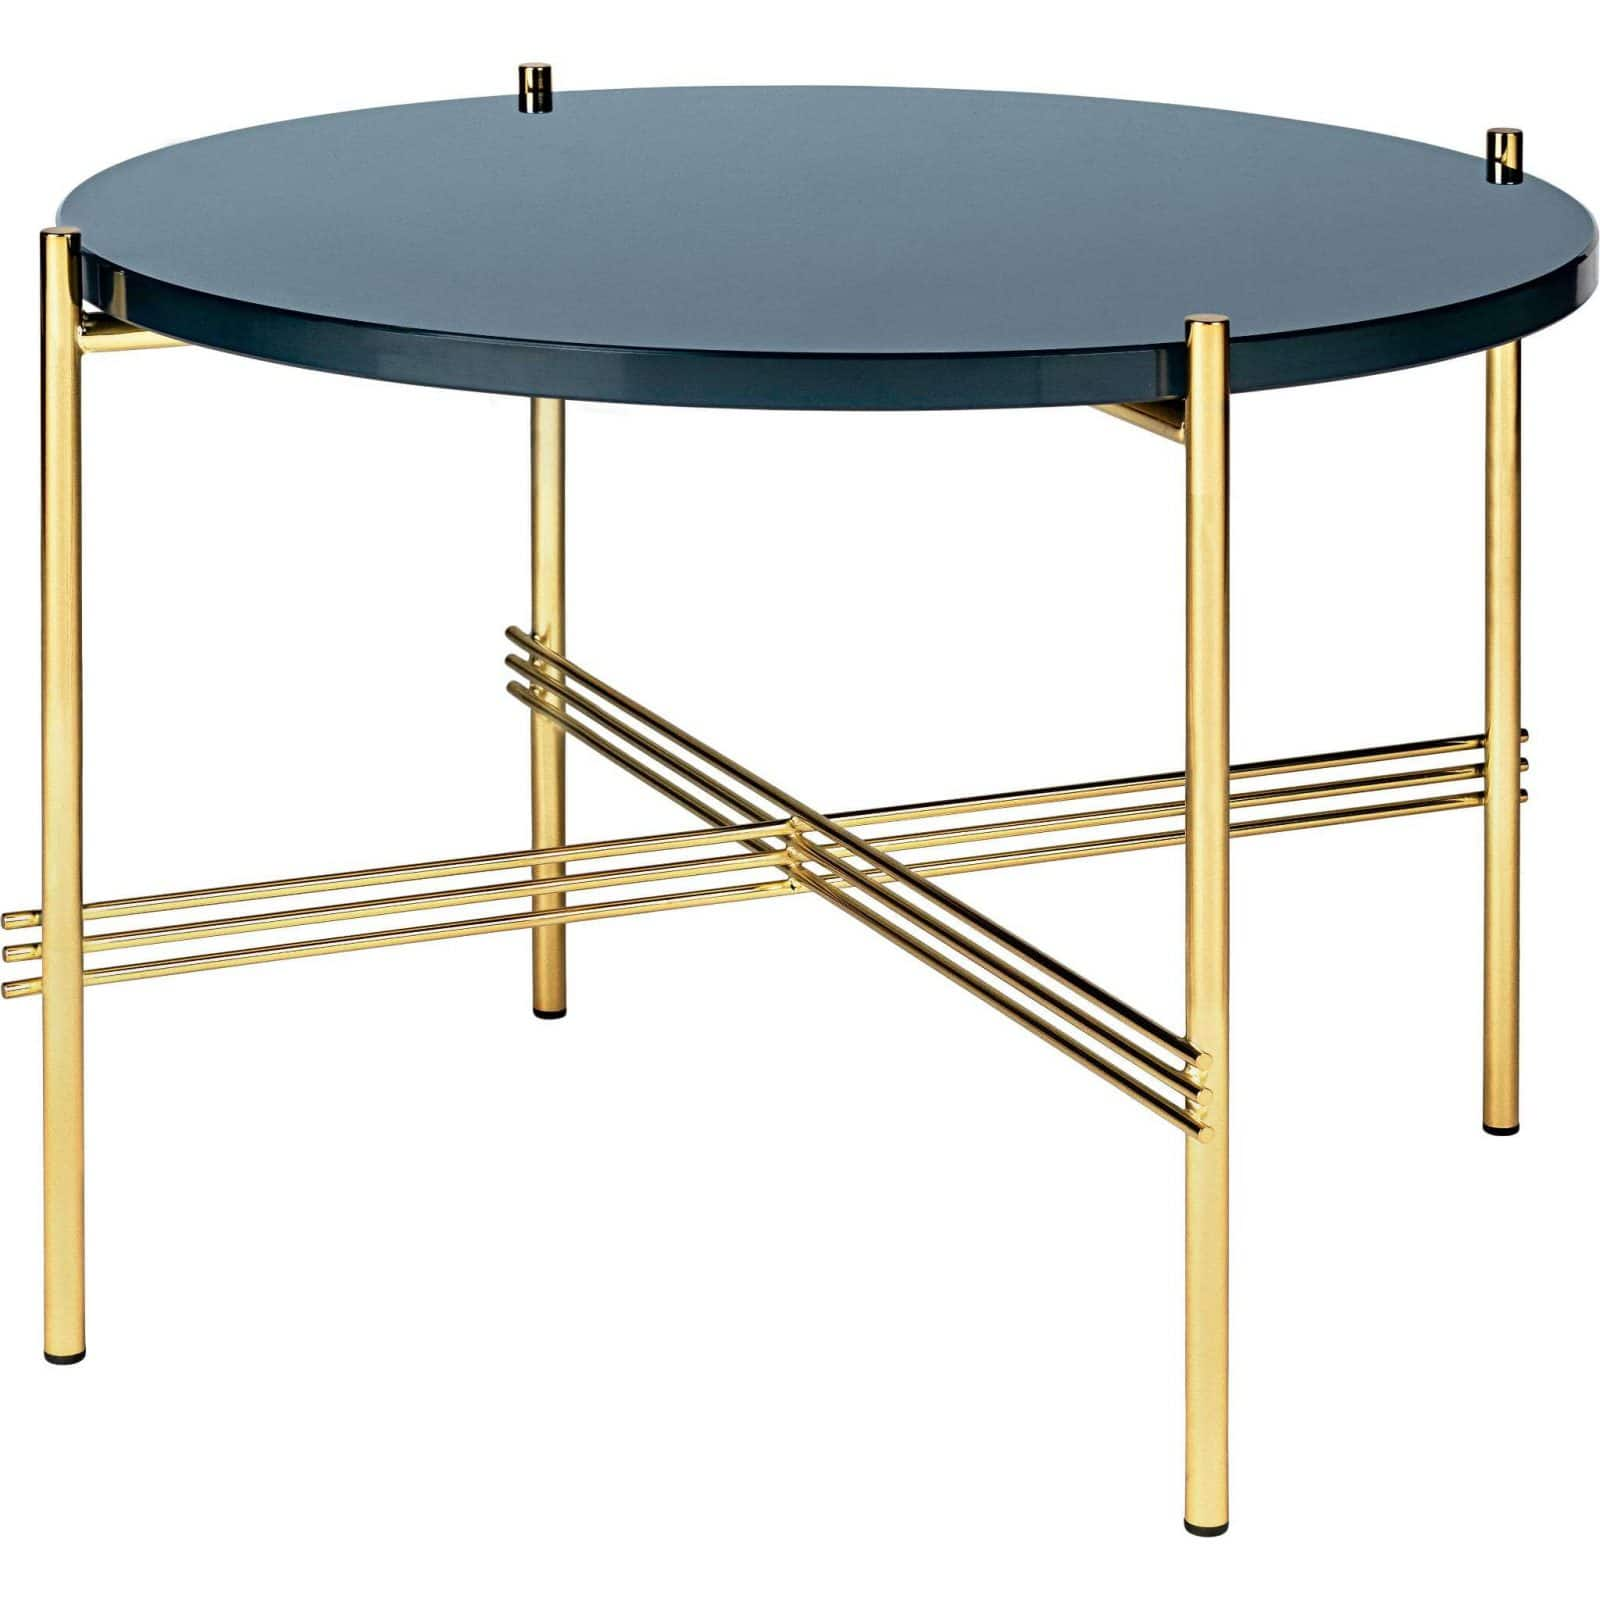 Gubi Ts Coffee Table Oj Design Amp Interi 248 R